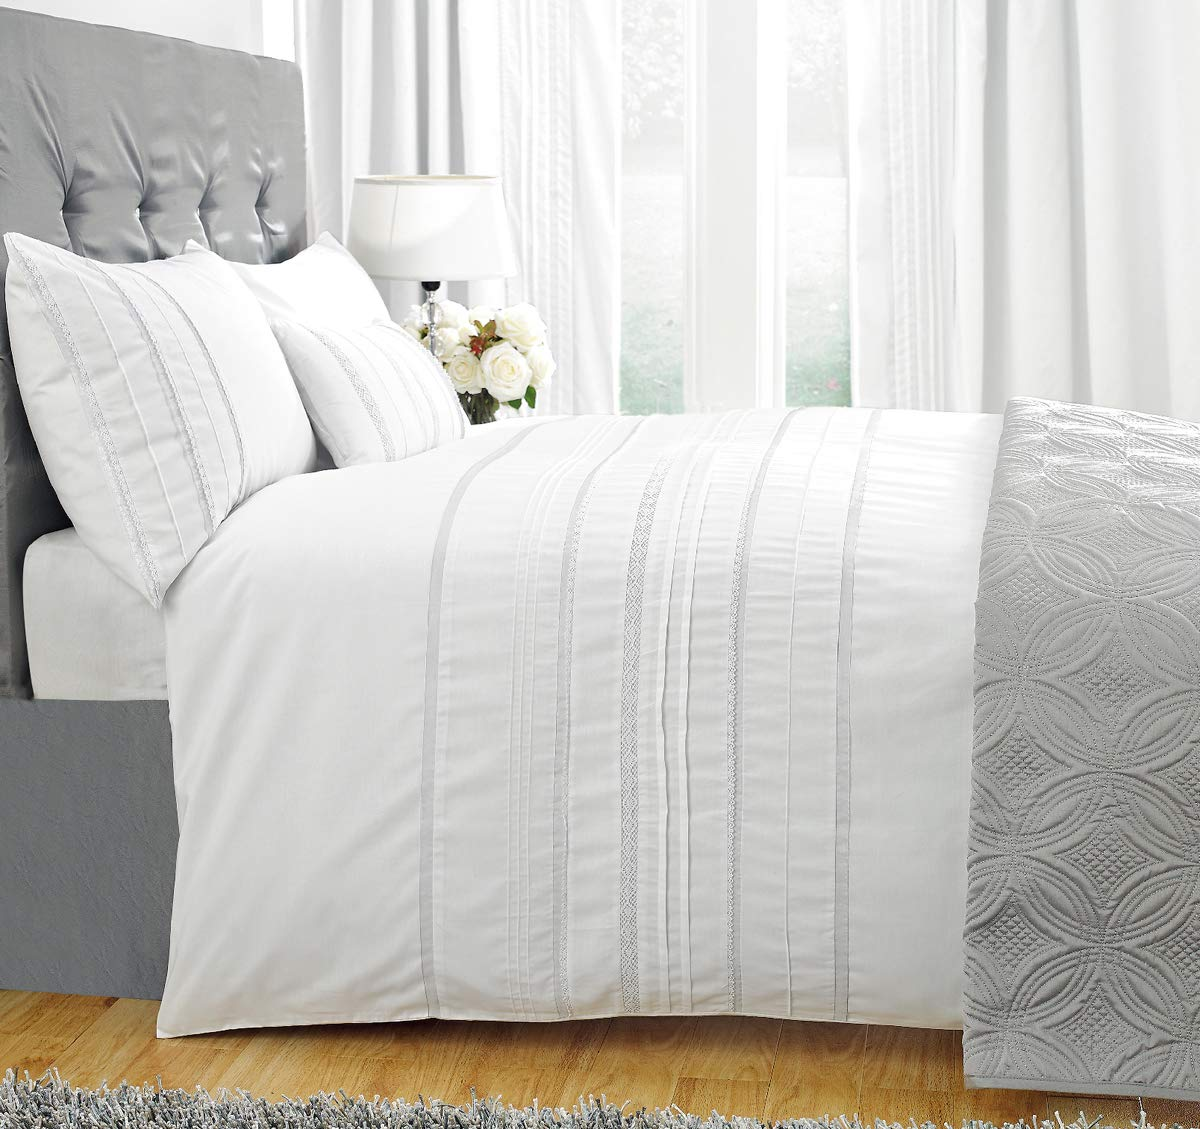 ZIGGUO Embellished Stripes White Duvet Cover Queen, Delicately Pintucked Lace Trim, 100% Cotton Bedding Set, 90''x90''